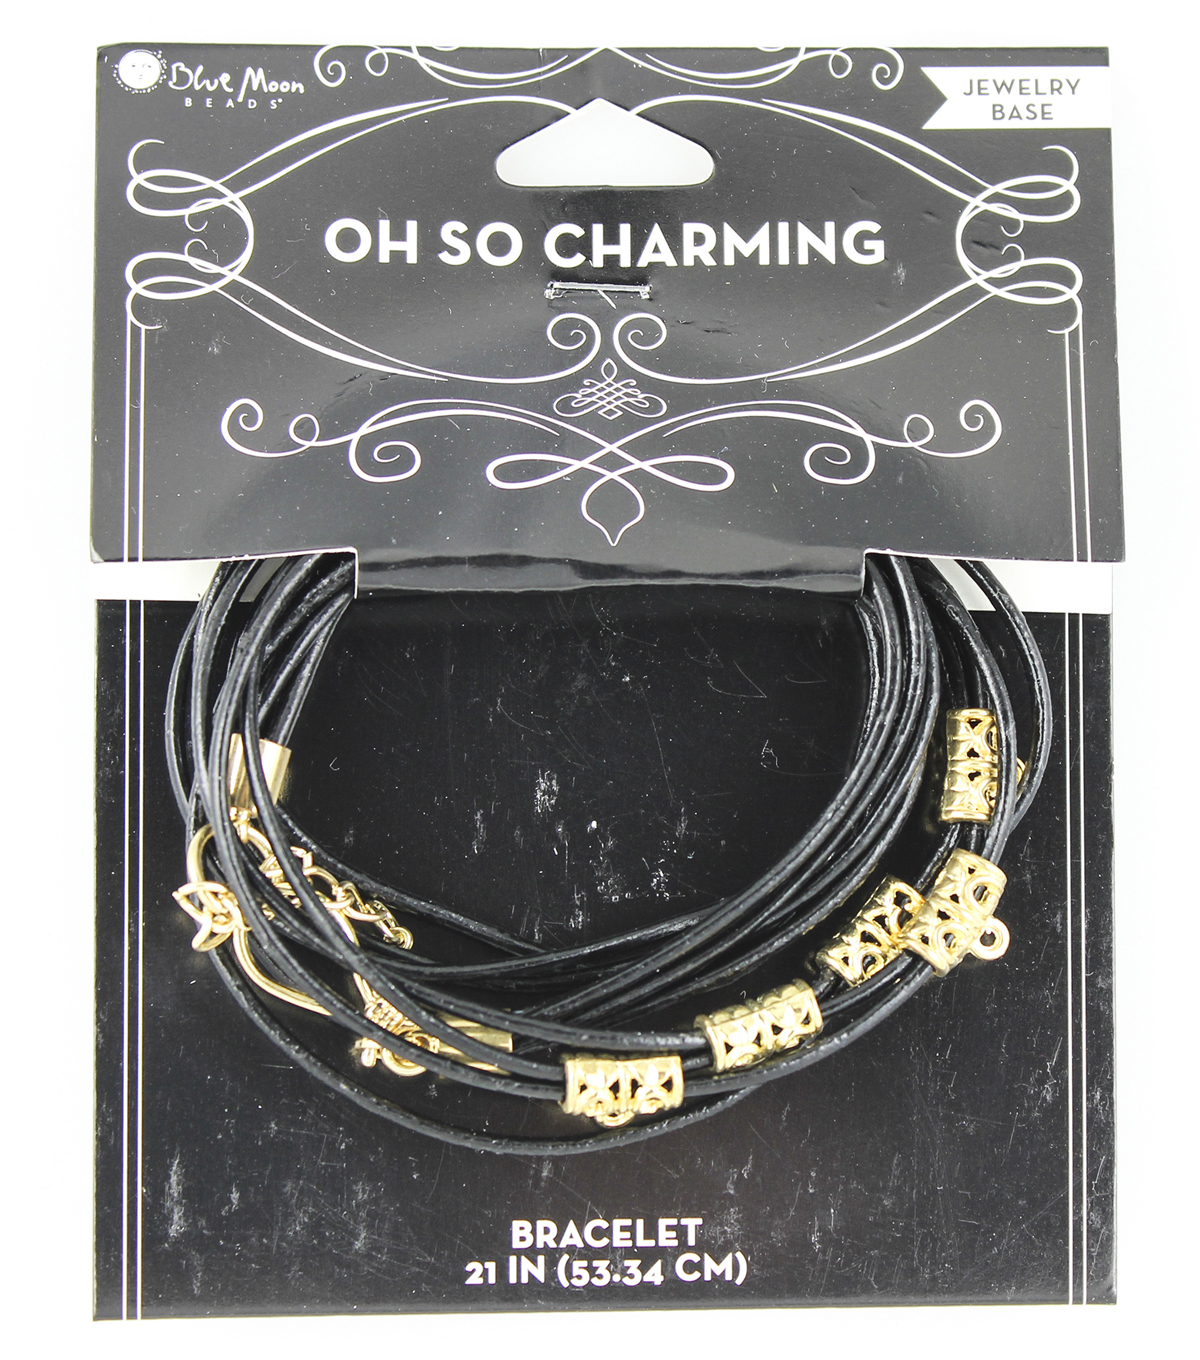 Blue Moon Beads Oh So Charming Bracelet Black Leather Wrap Gold Charms